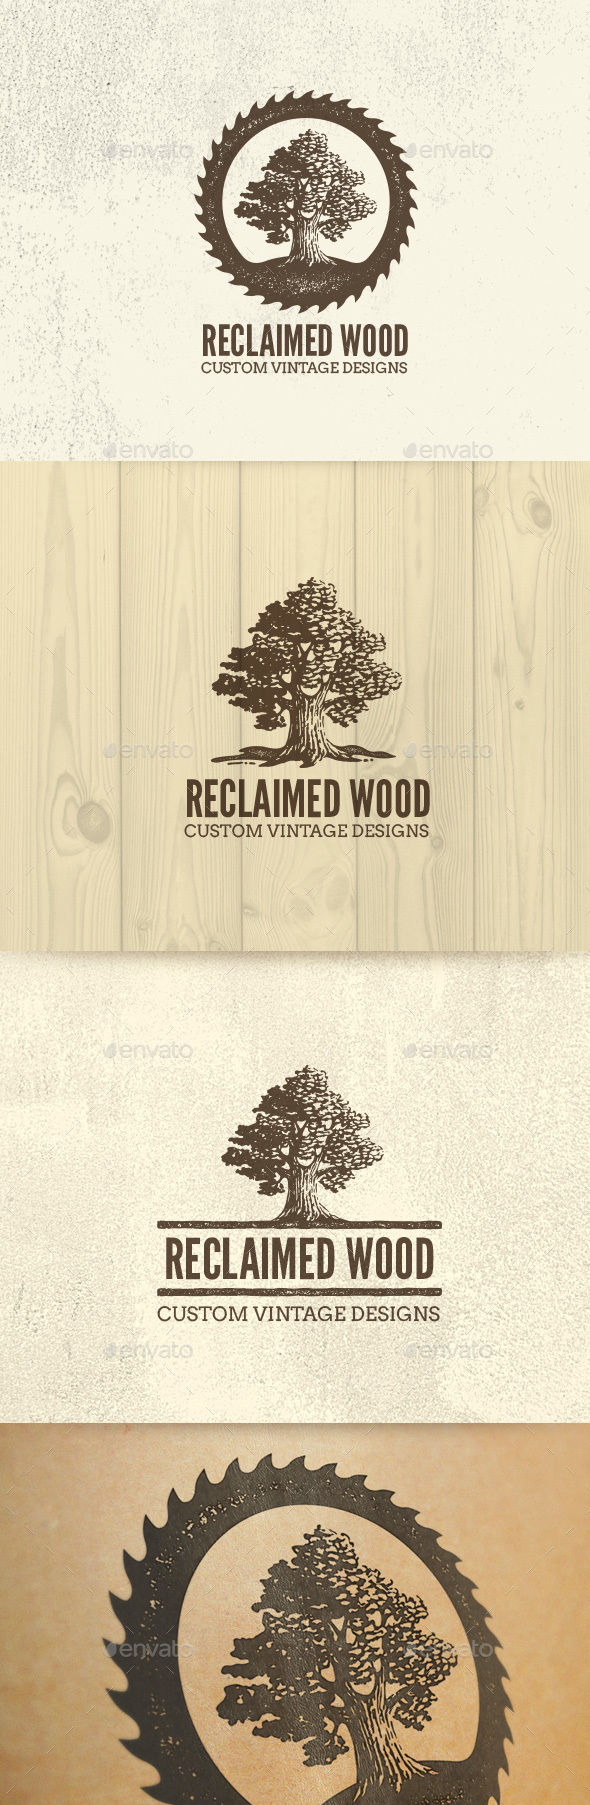 Reclaimed Wood Oak Tree Rough Artisan Logo | Nature